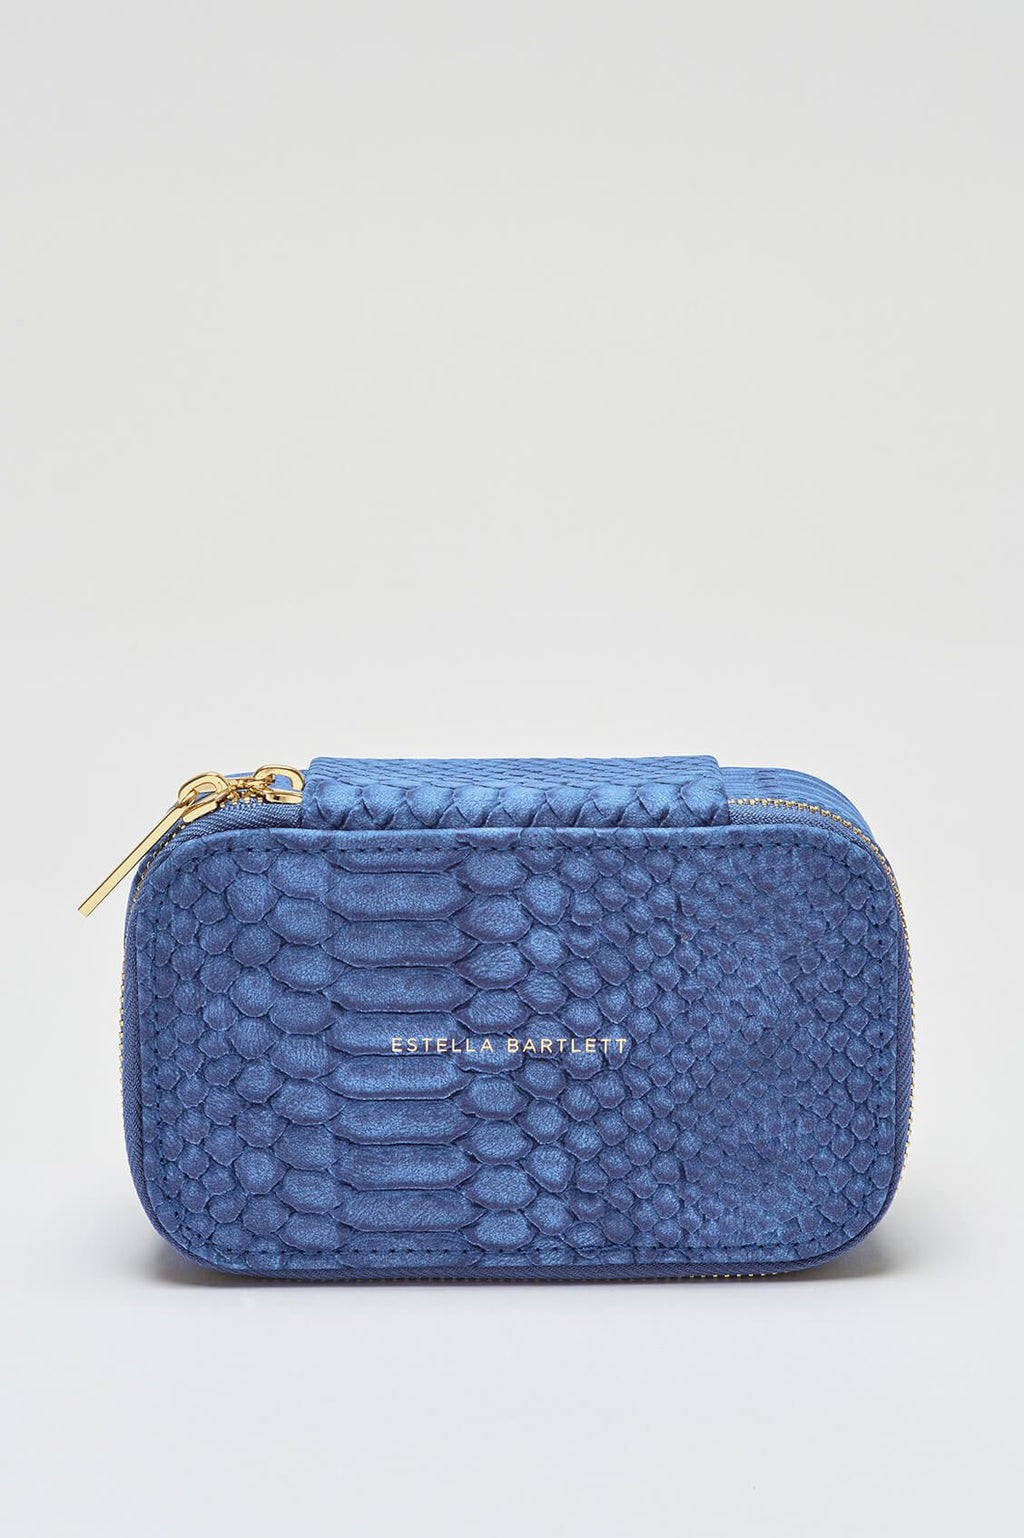 Estella Bartlett Denim Snakeskin Jewellery Box